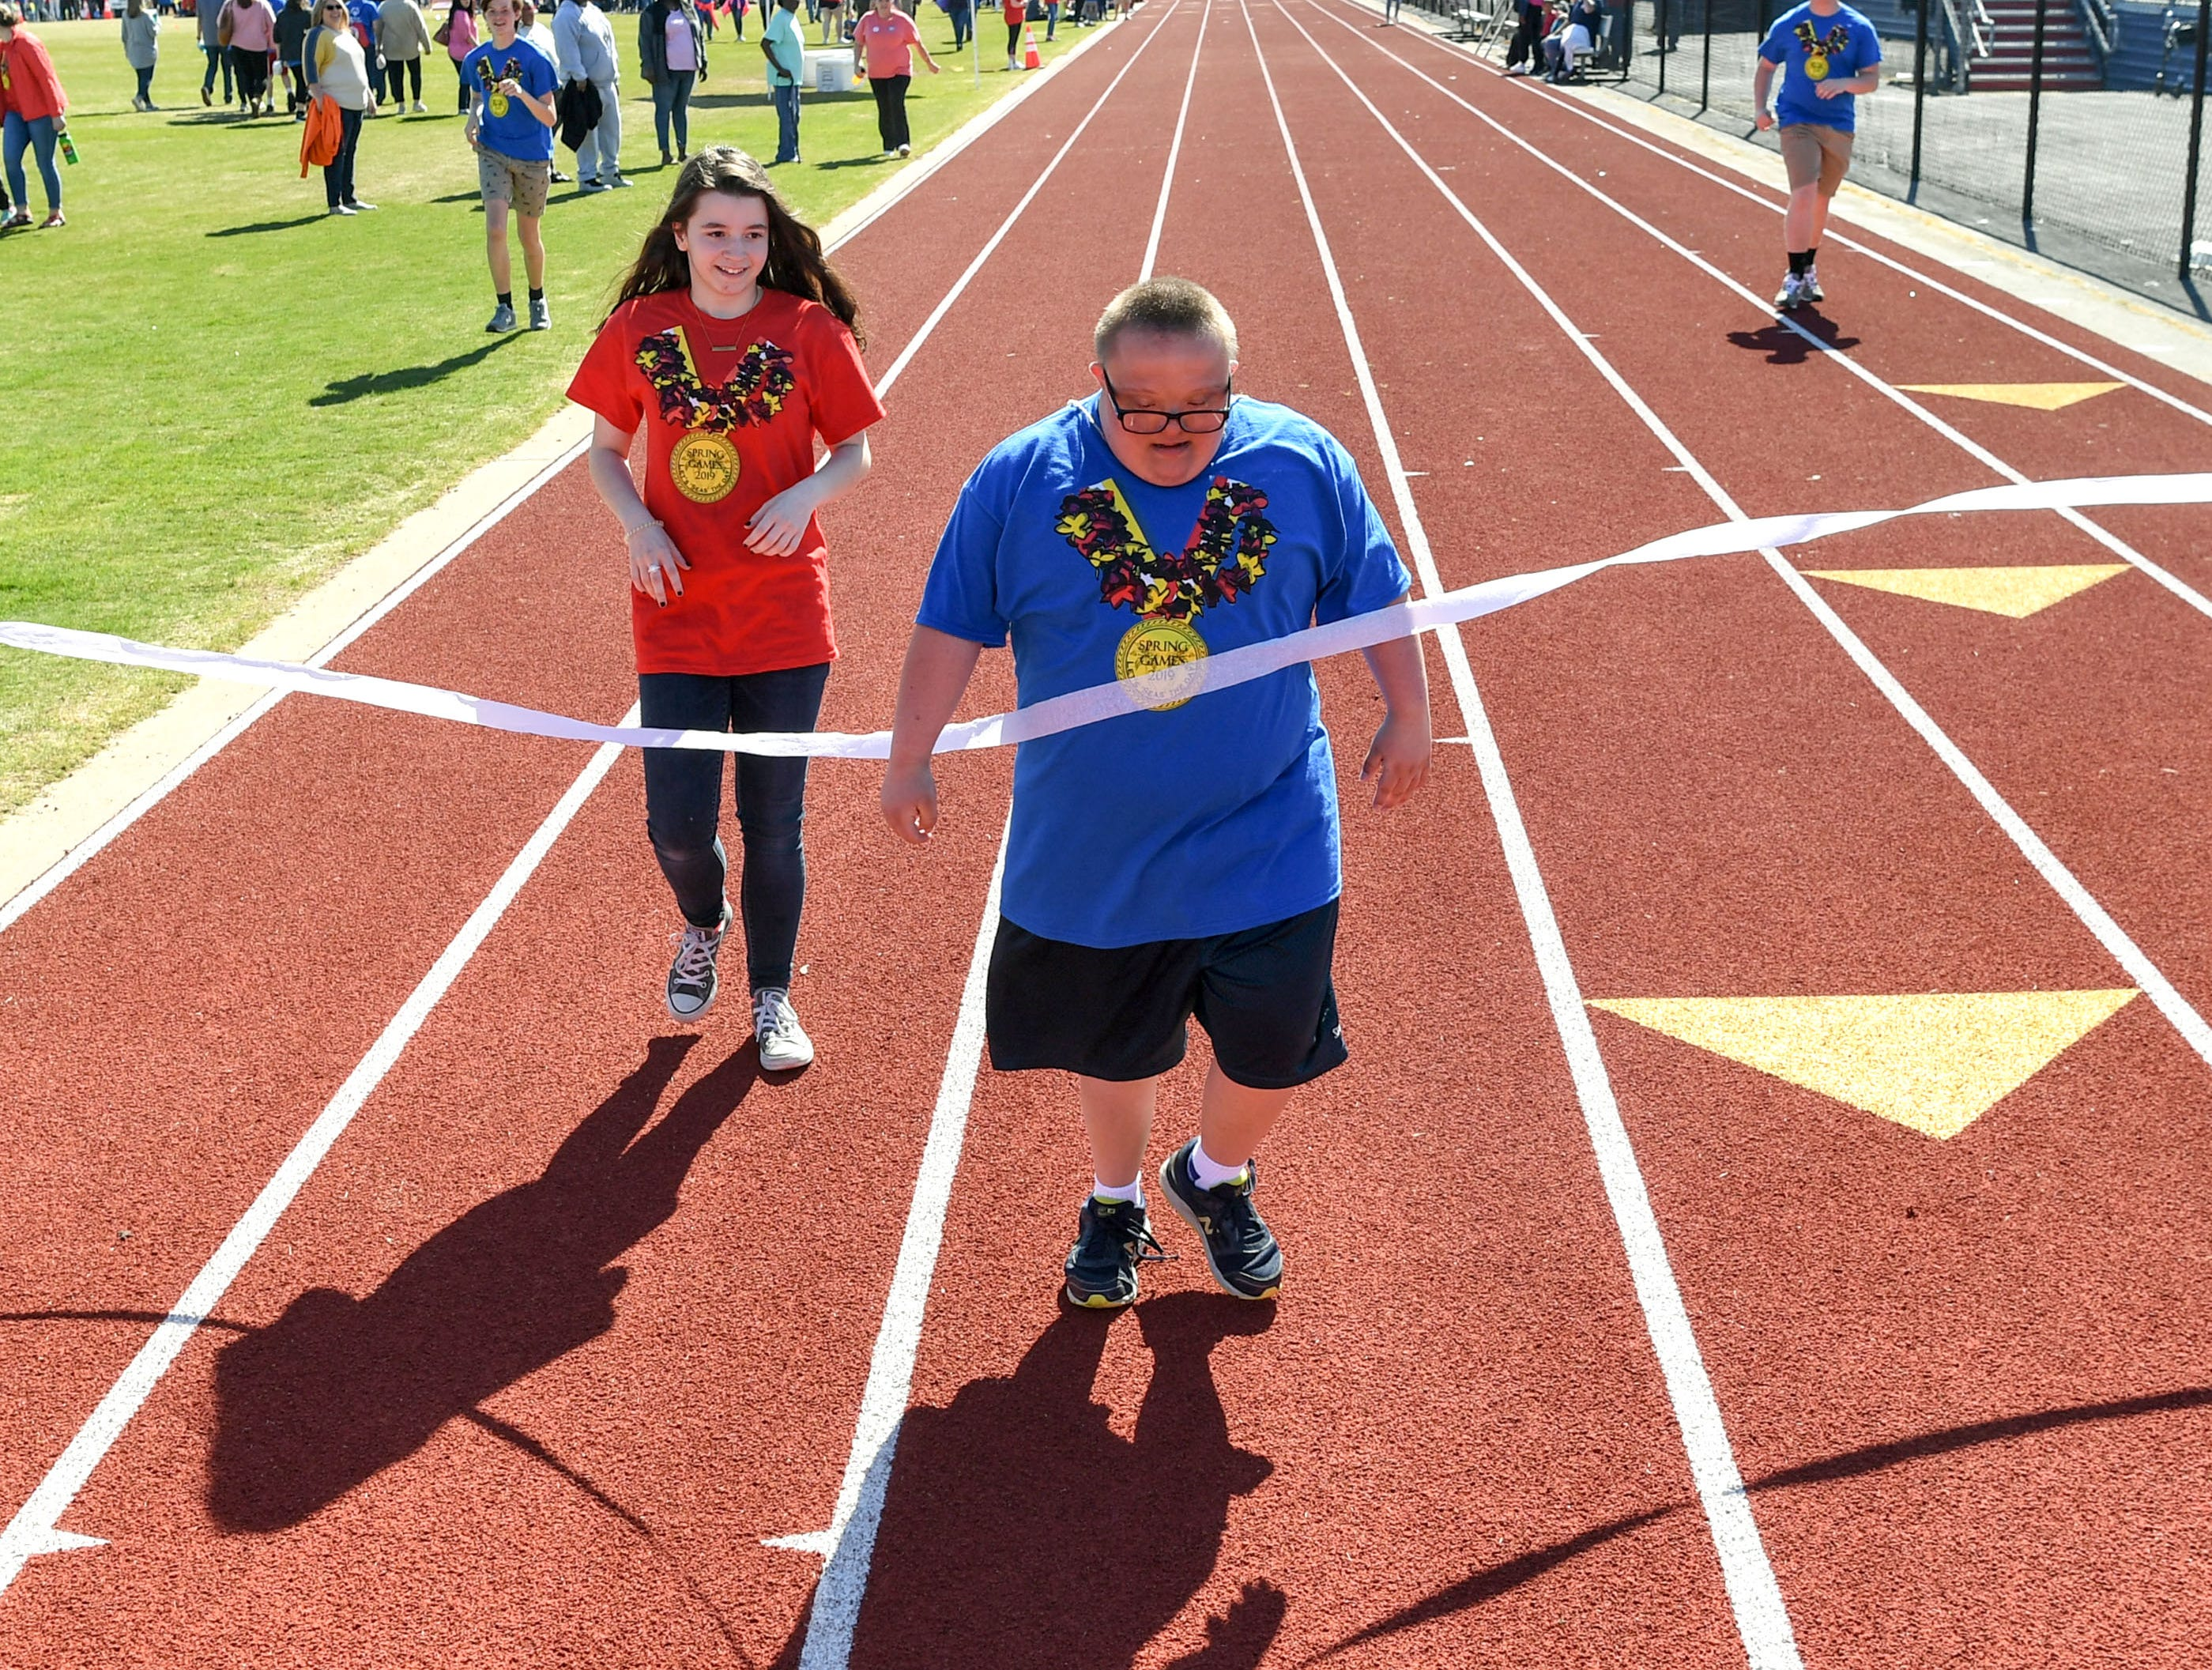 Cody Darby finishes the 100 yard walk during the Special Olympics South Carolina Area 14 Spring Games at Marlee Gambrell field at Belton-Honea Path High School Wednesday.